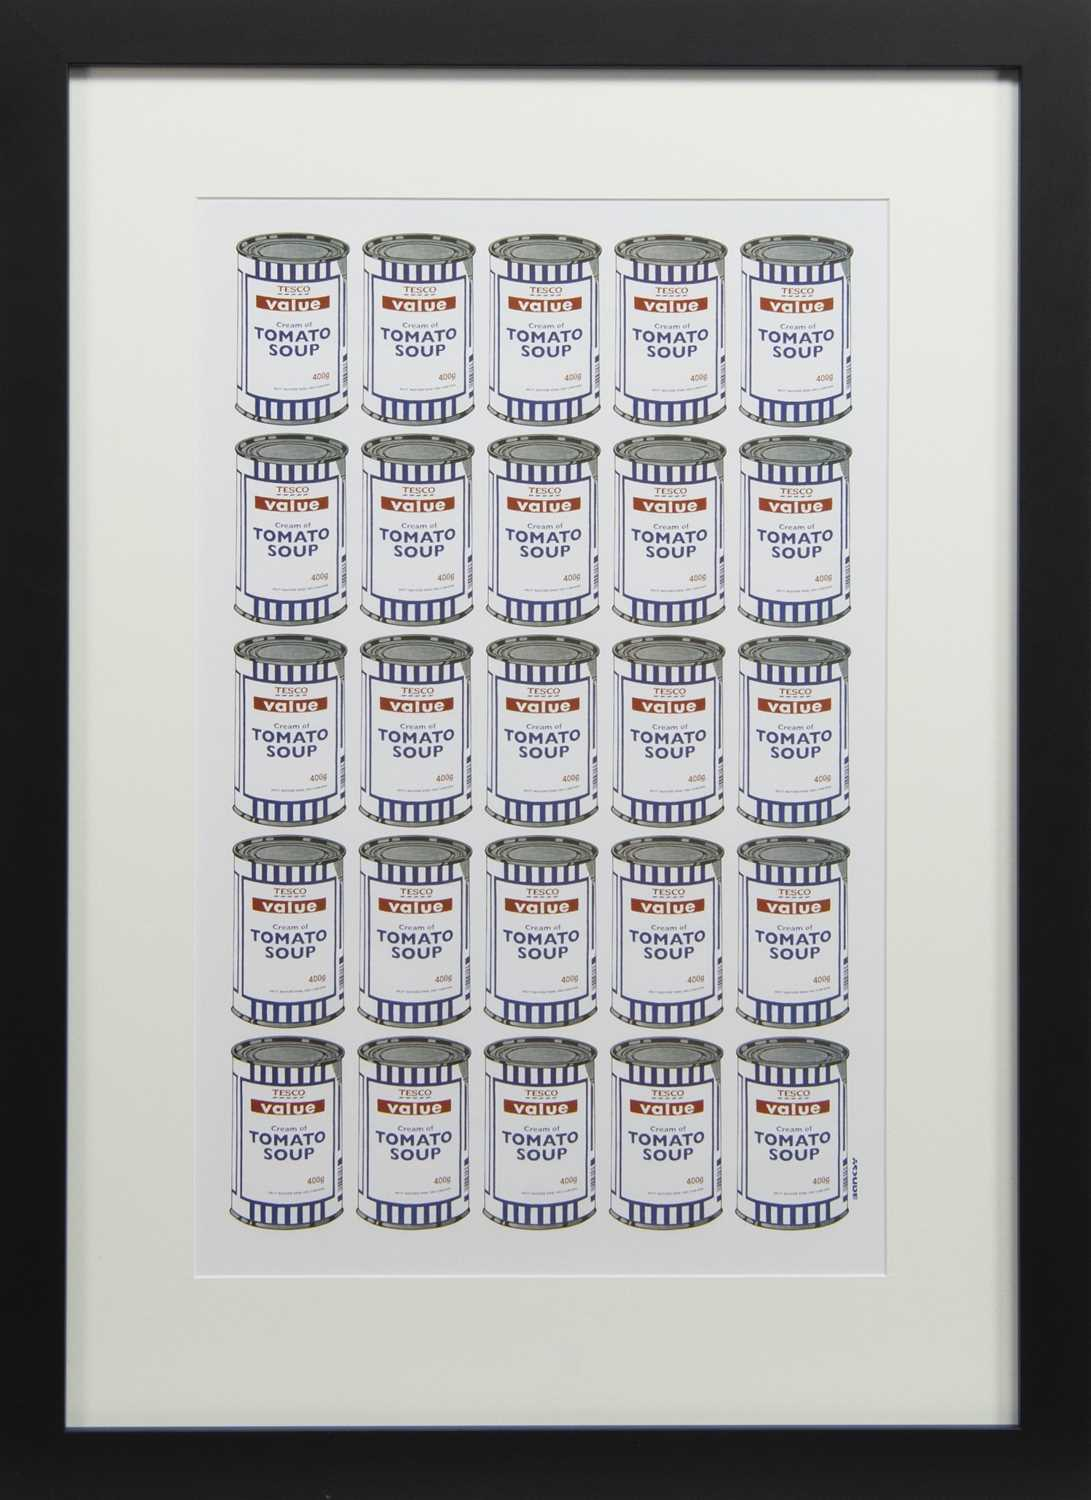 Lot 535 - TESCO VALUE TOMATO SOUP CANS, A PRINT AFTER BANKSY